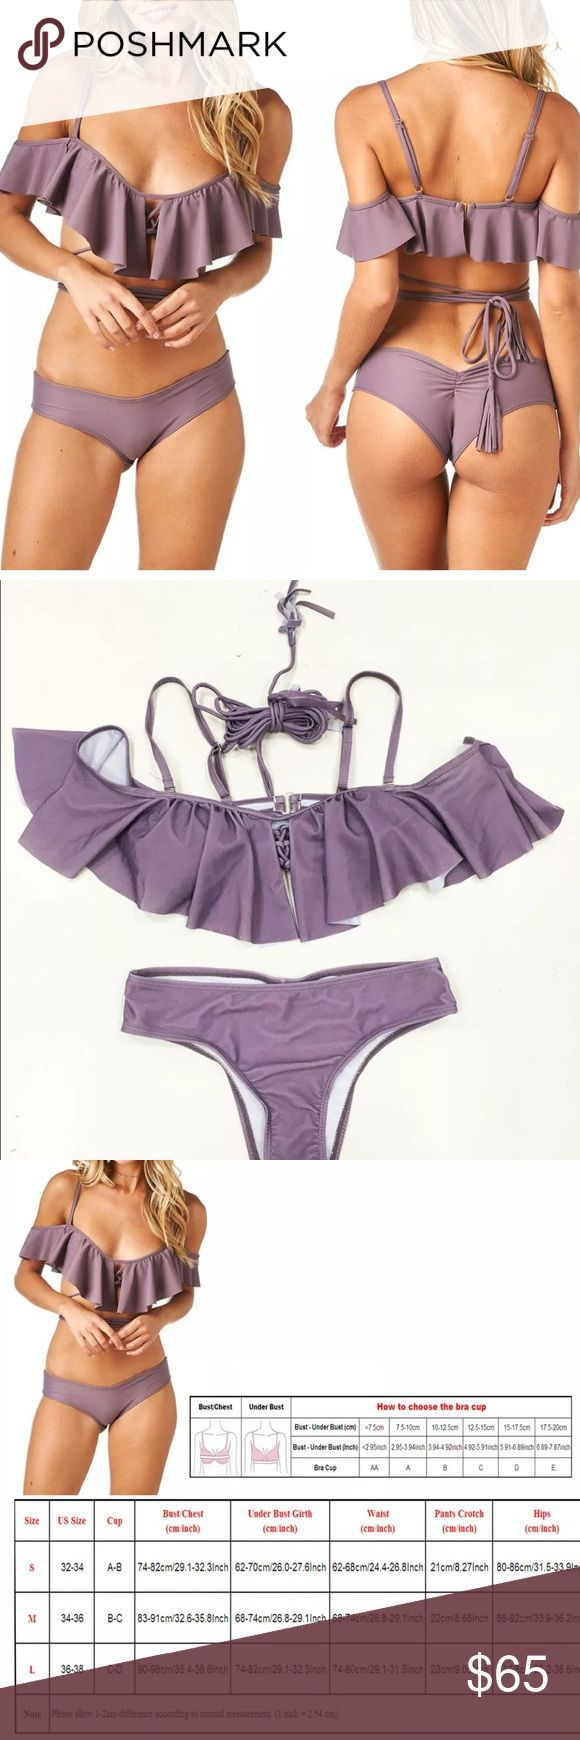 • Lavender Daisy • Flouncy Tassel Tie #Bikini • Lavender Daisy • Flounce #Bikini / Available in Small, Medium + Large • Also available in Black in Separate Listing • Flouncy ruffled top • Adjustable straps • Tassel ties for midsection • Minimal coverage shirred back bottoms • Size Chart Available for Reference • 2017 Bathing Suit Style Trend • Spring Break / Summer / Festival / Boho chic / Sexy Swimsuit Swim Bikinis